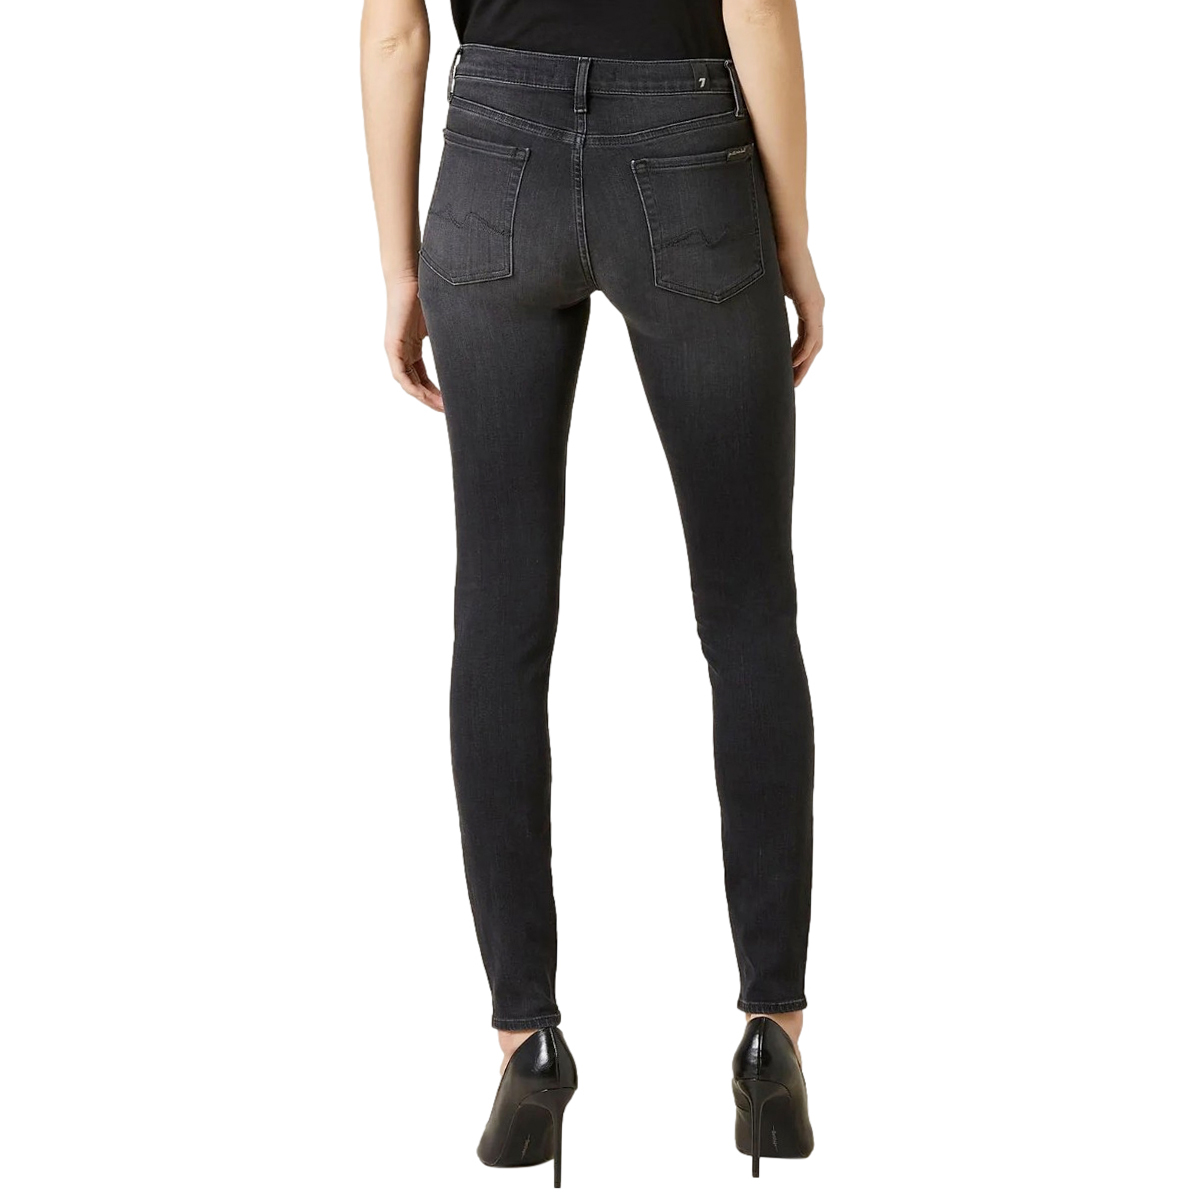 7 For All Mankind Black Illusion Luxe Skinny jeans